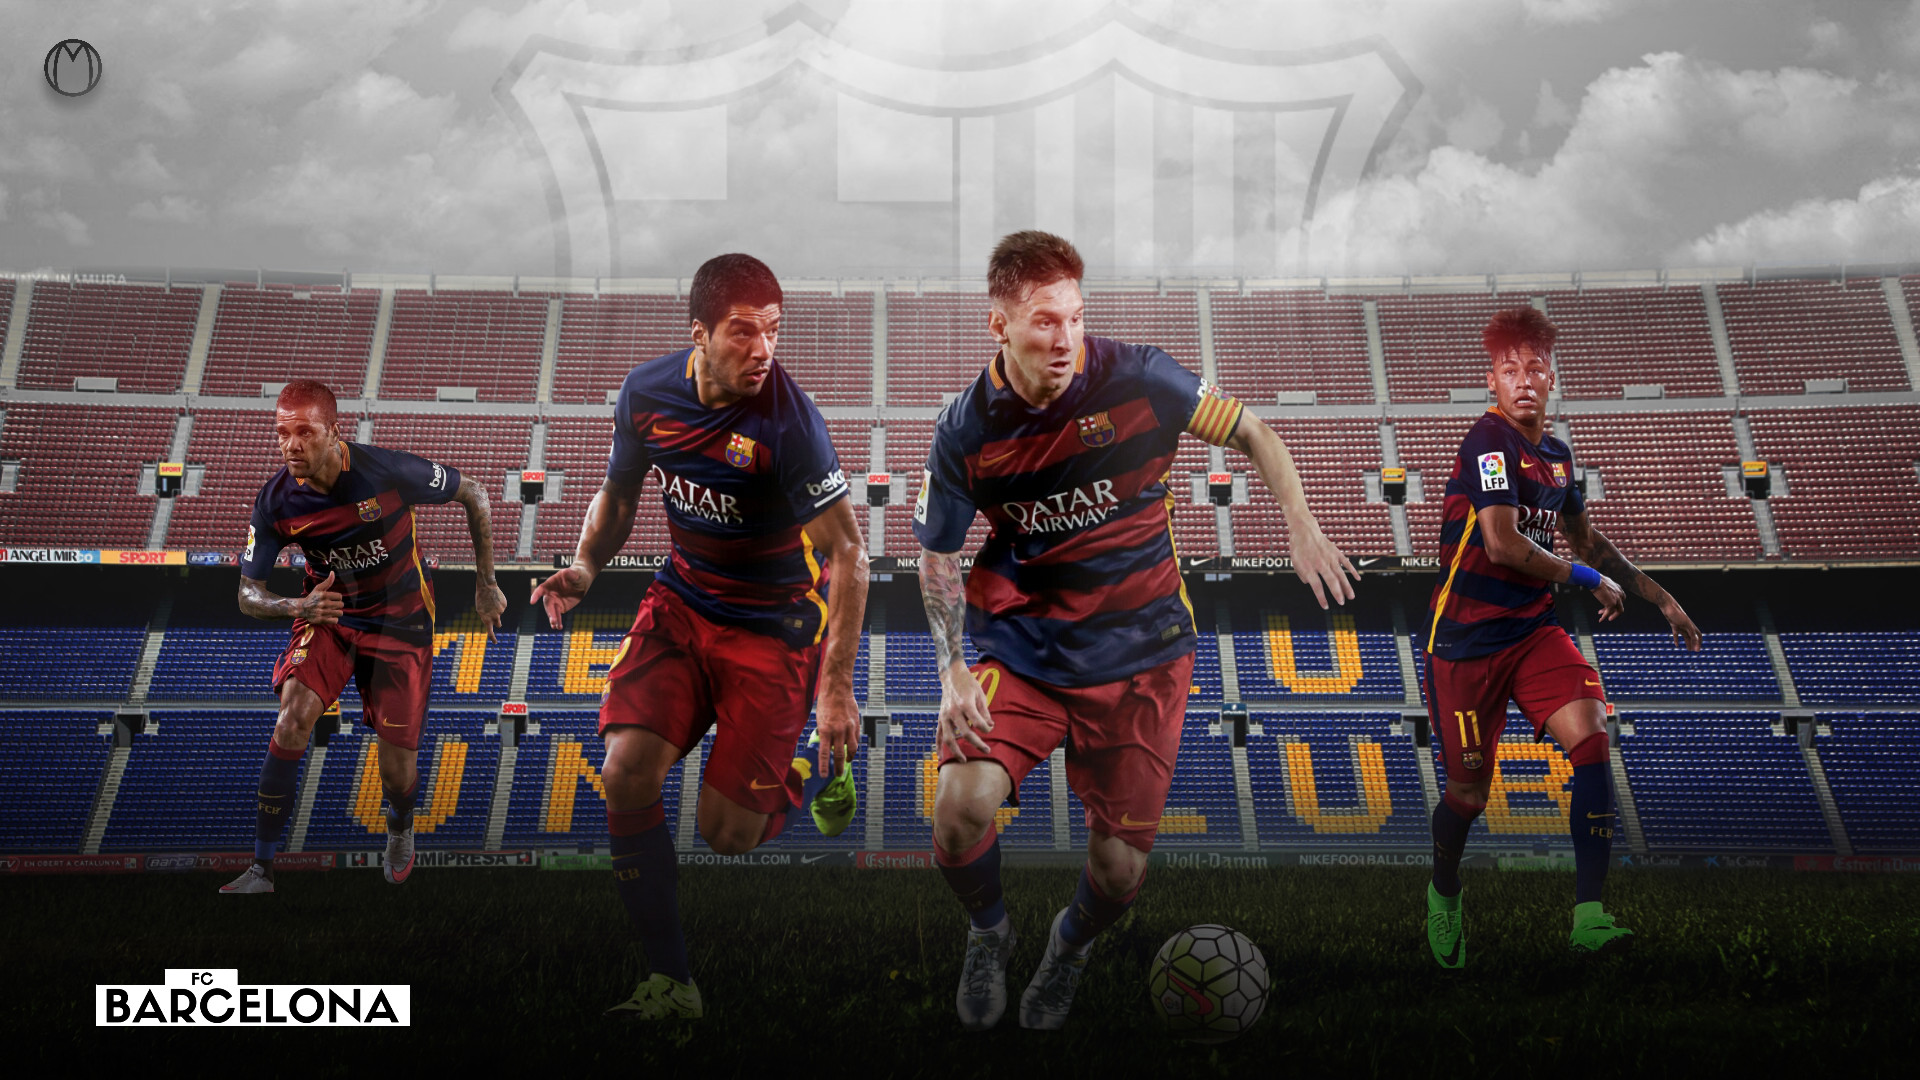 … free fc barcelona team wallpapers hd resolution long wallpapers …